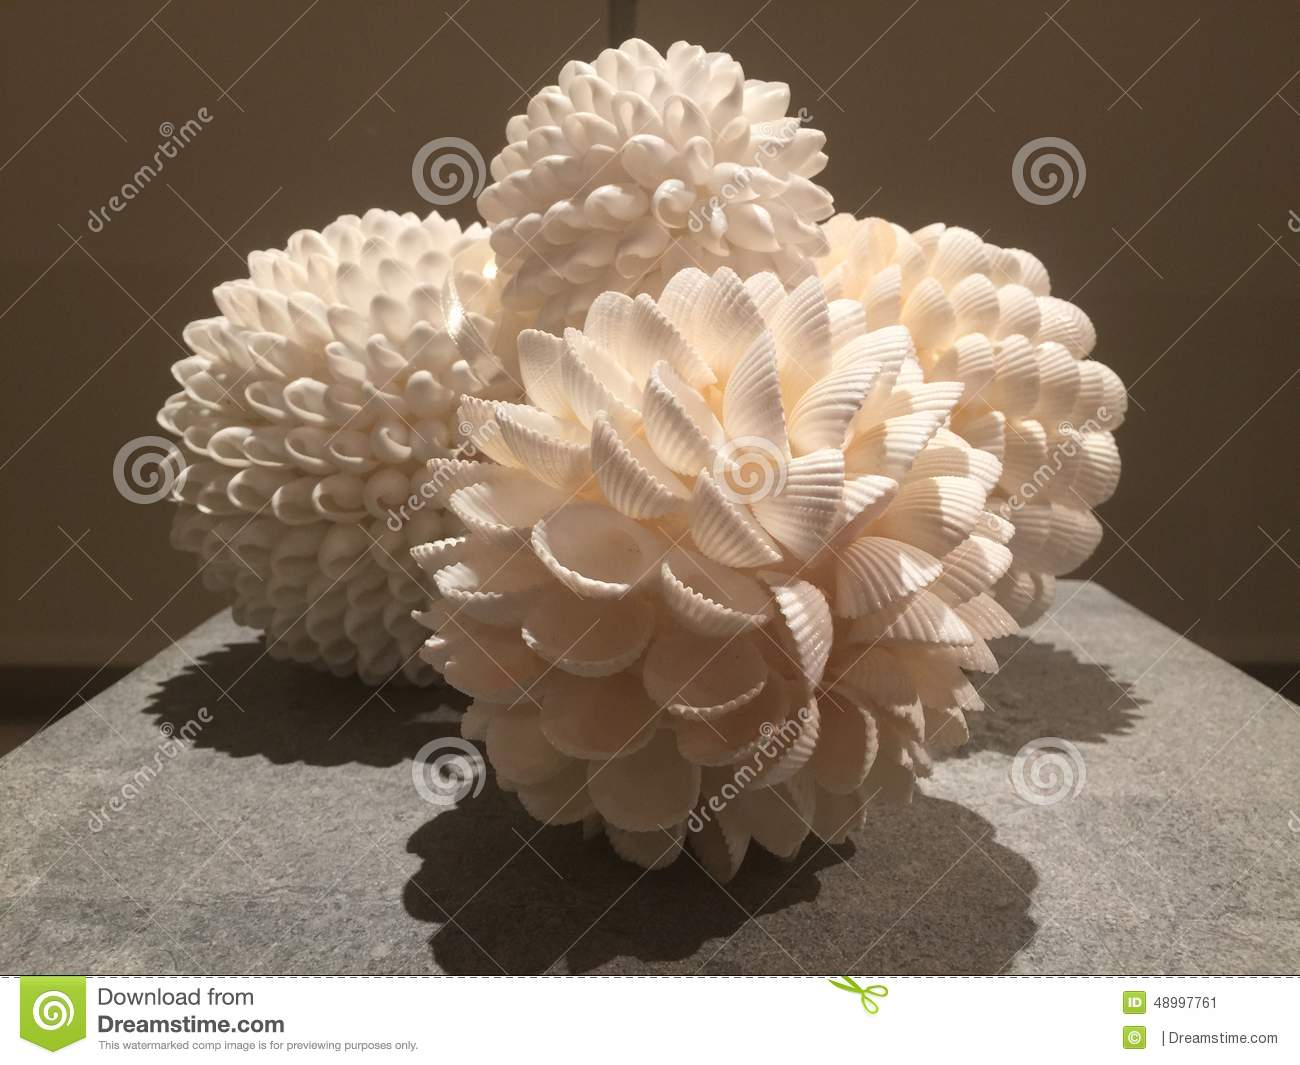 Shell decorations 3 0 stock photo image 48997761 for What are shells made of